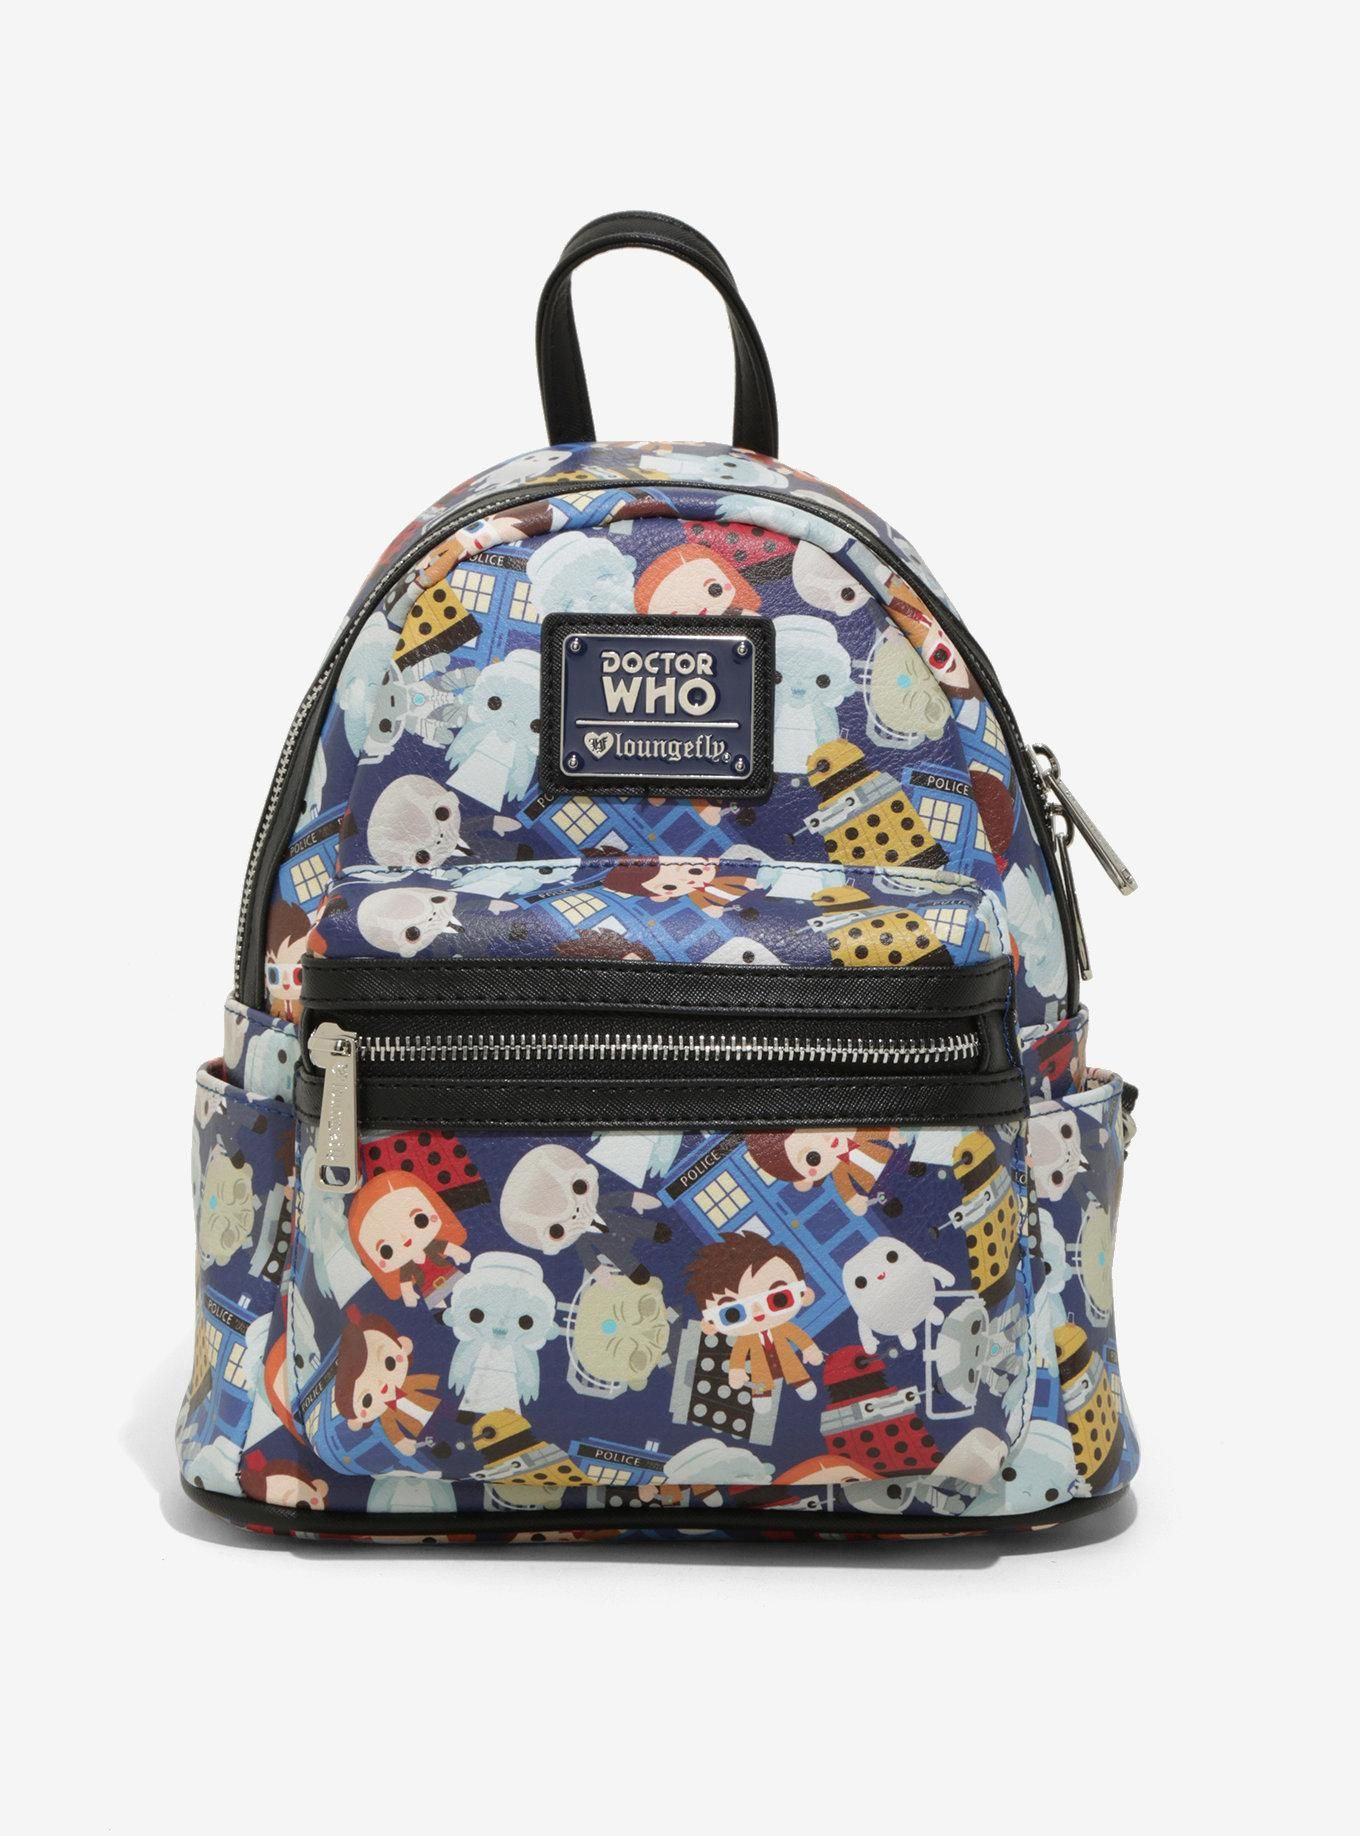 Loungefly Doctor Who Mini Backpack - BoxLunch Exclusive  0375b108ef3ee